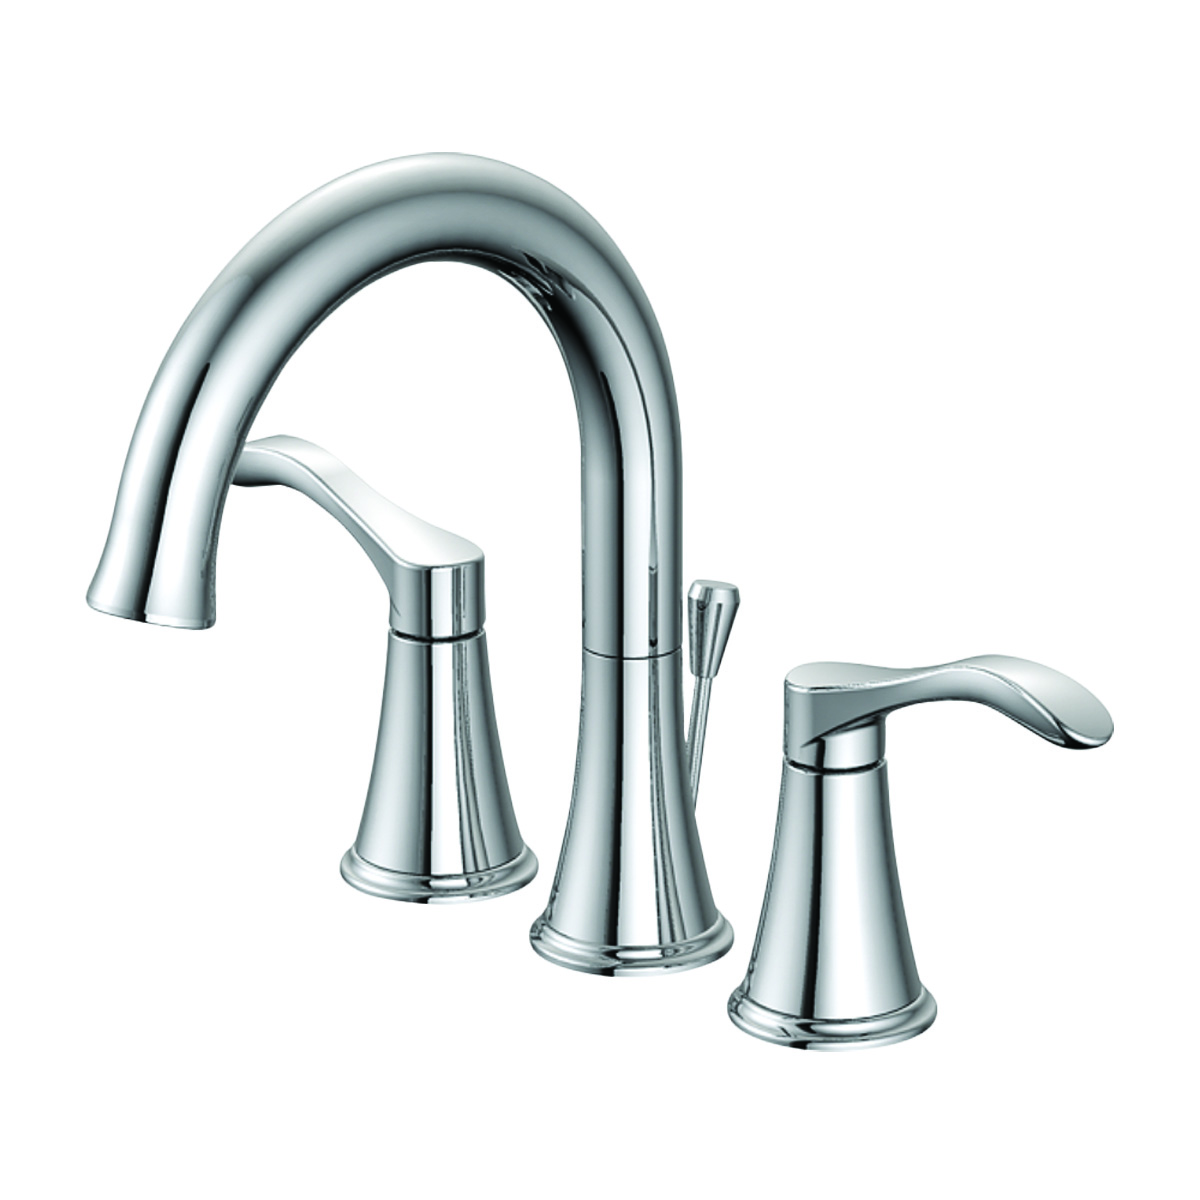 EZ-FLO 10713 Two-Handle Widespread Bathroom Lavatory Faucet with 50/50 Pop-up, Chrome